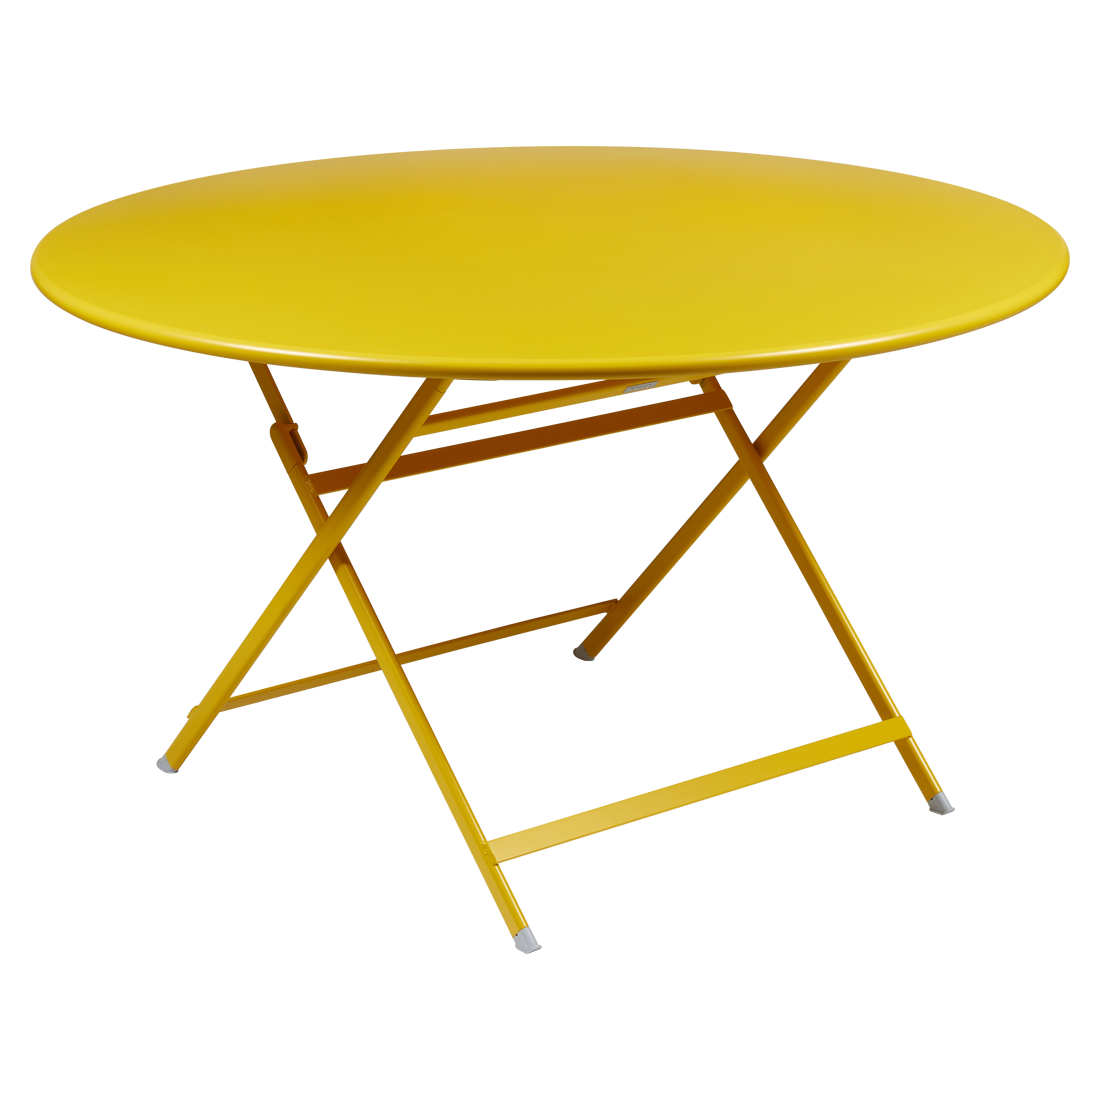 CARACTERE / 5932 TABLE Ø 128 CM